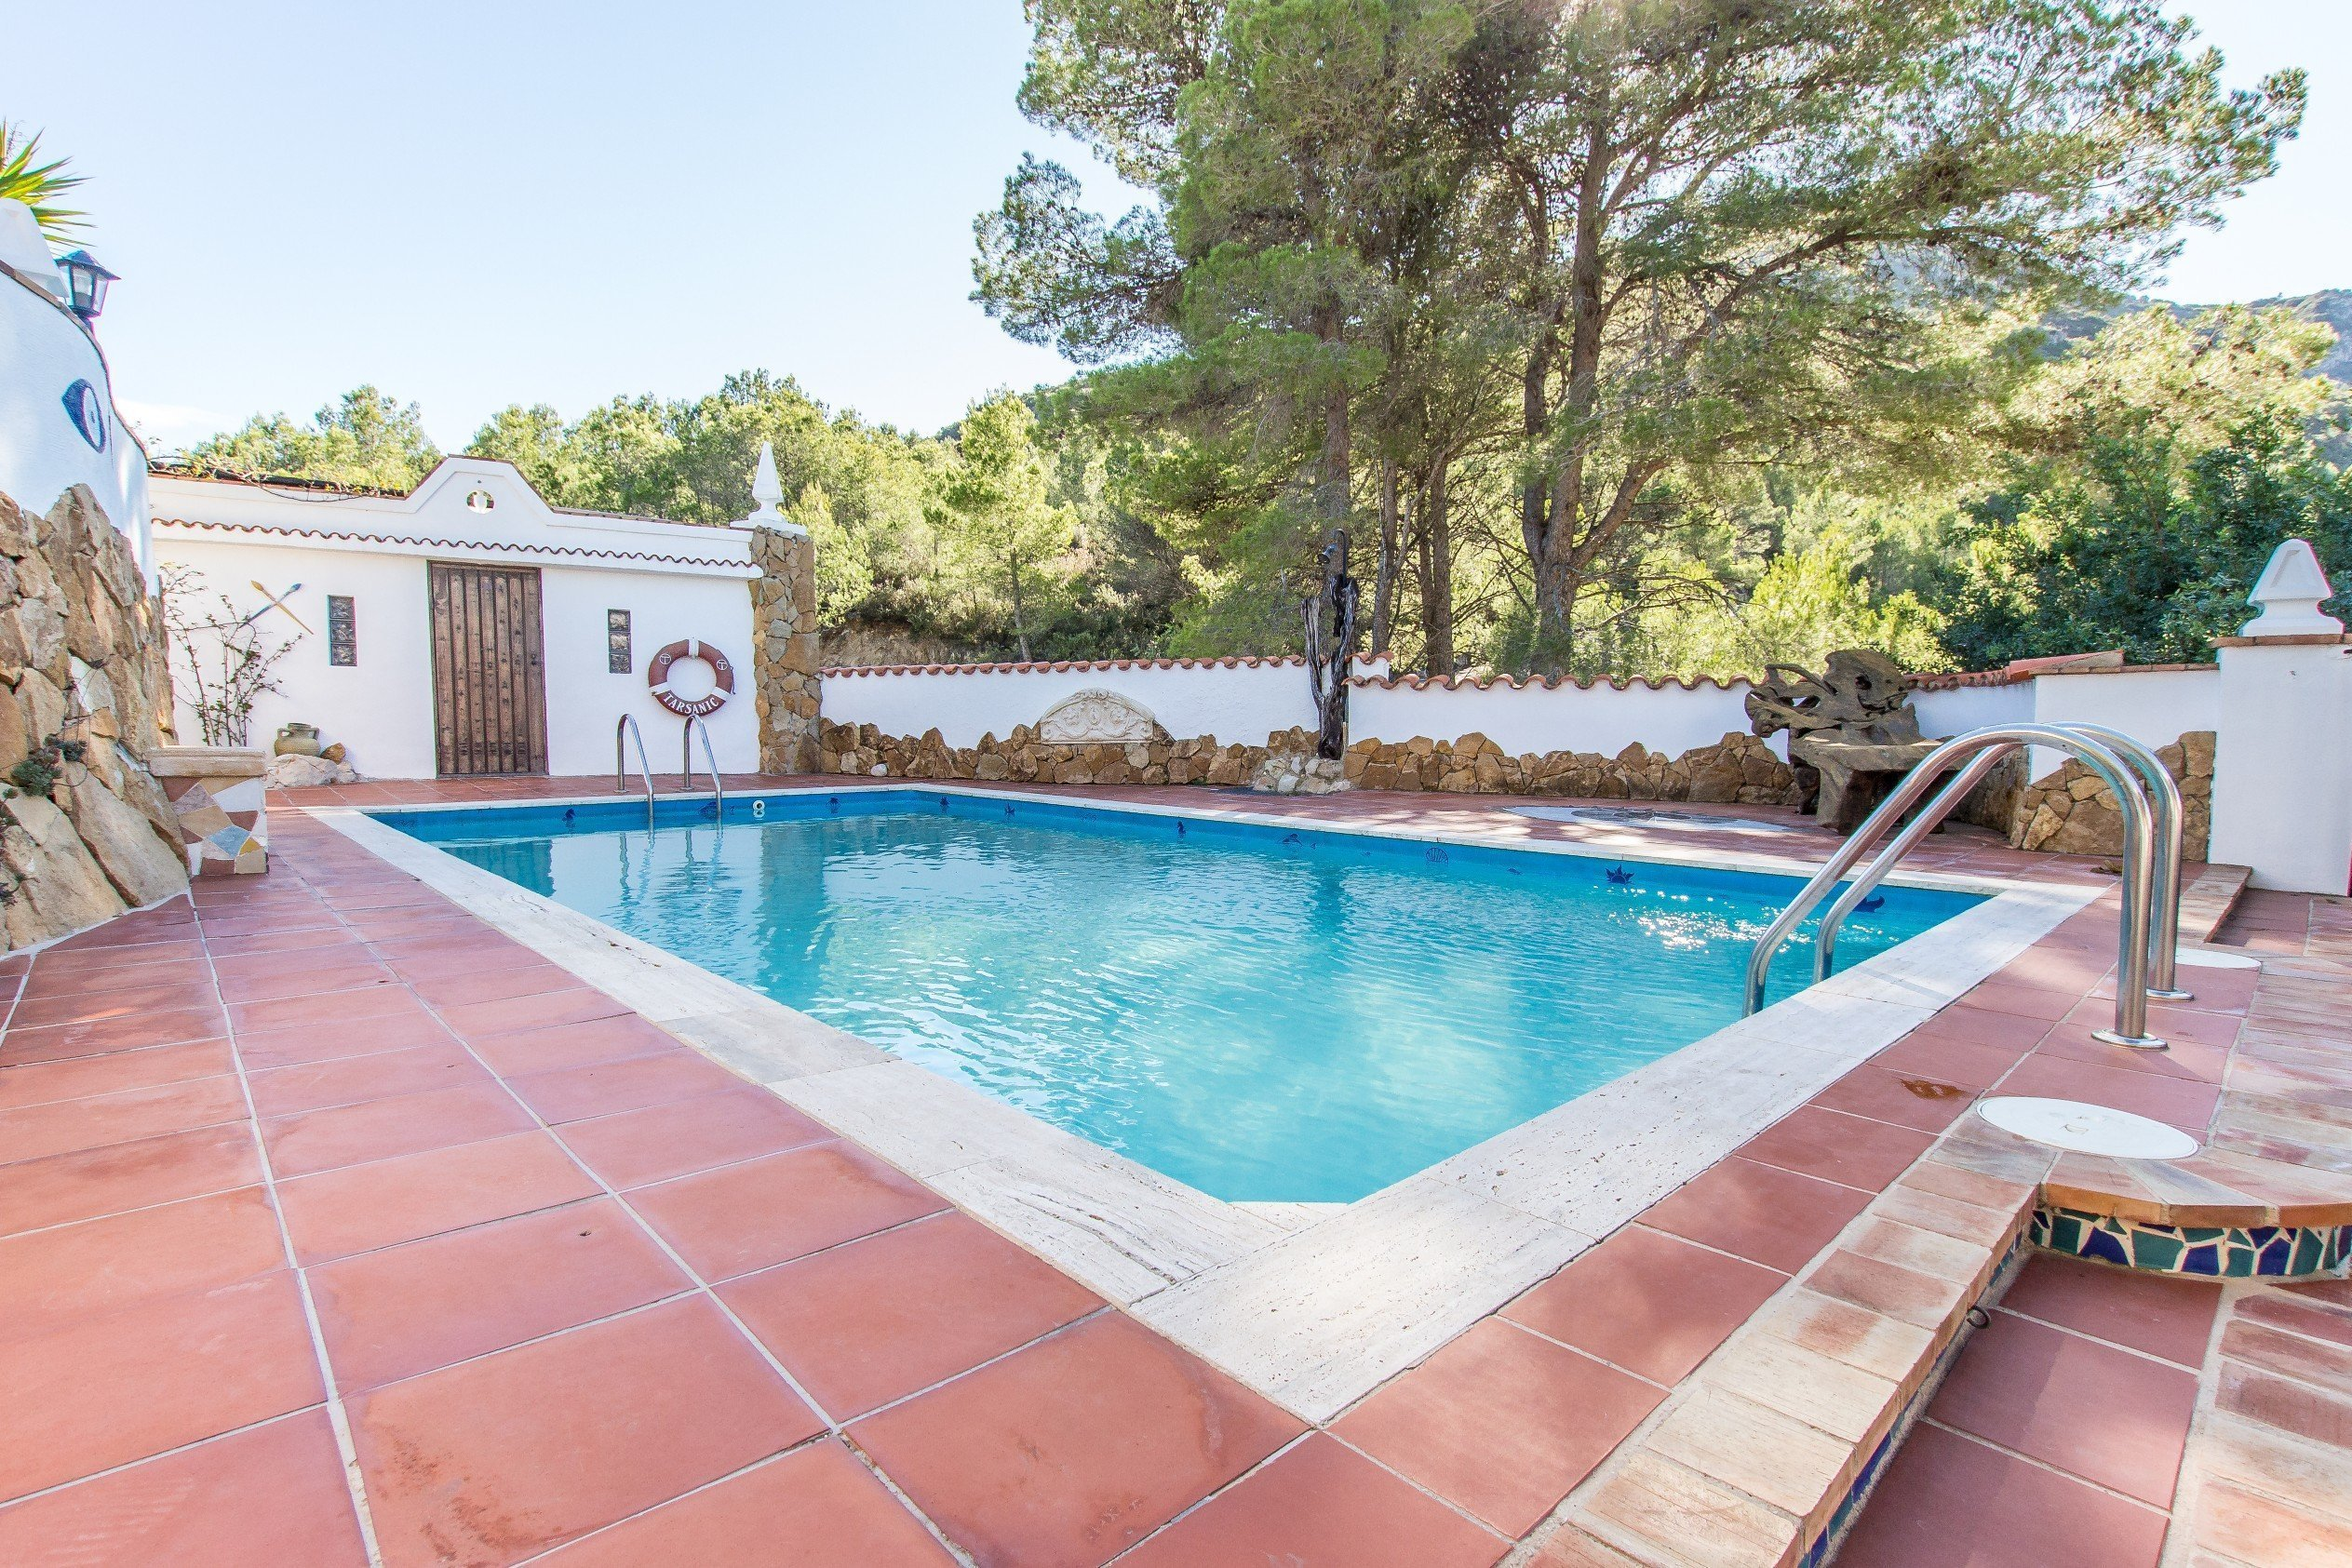 Pool at Casa Tarsan